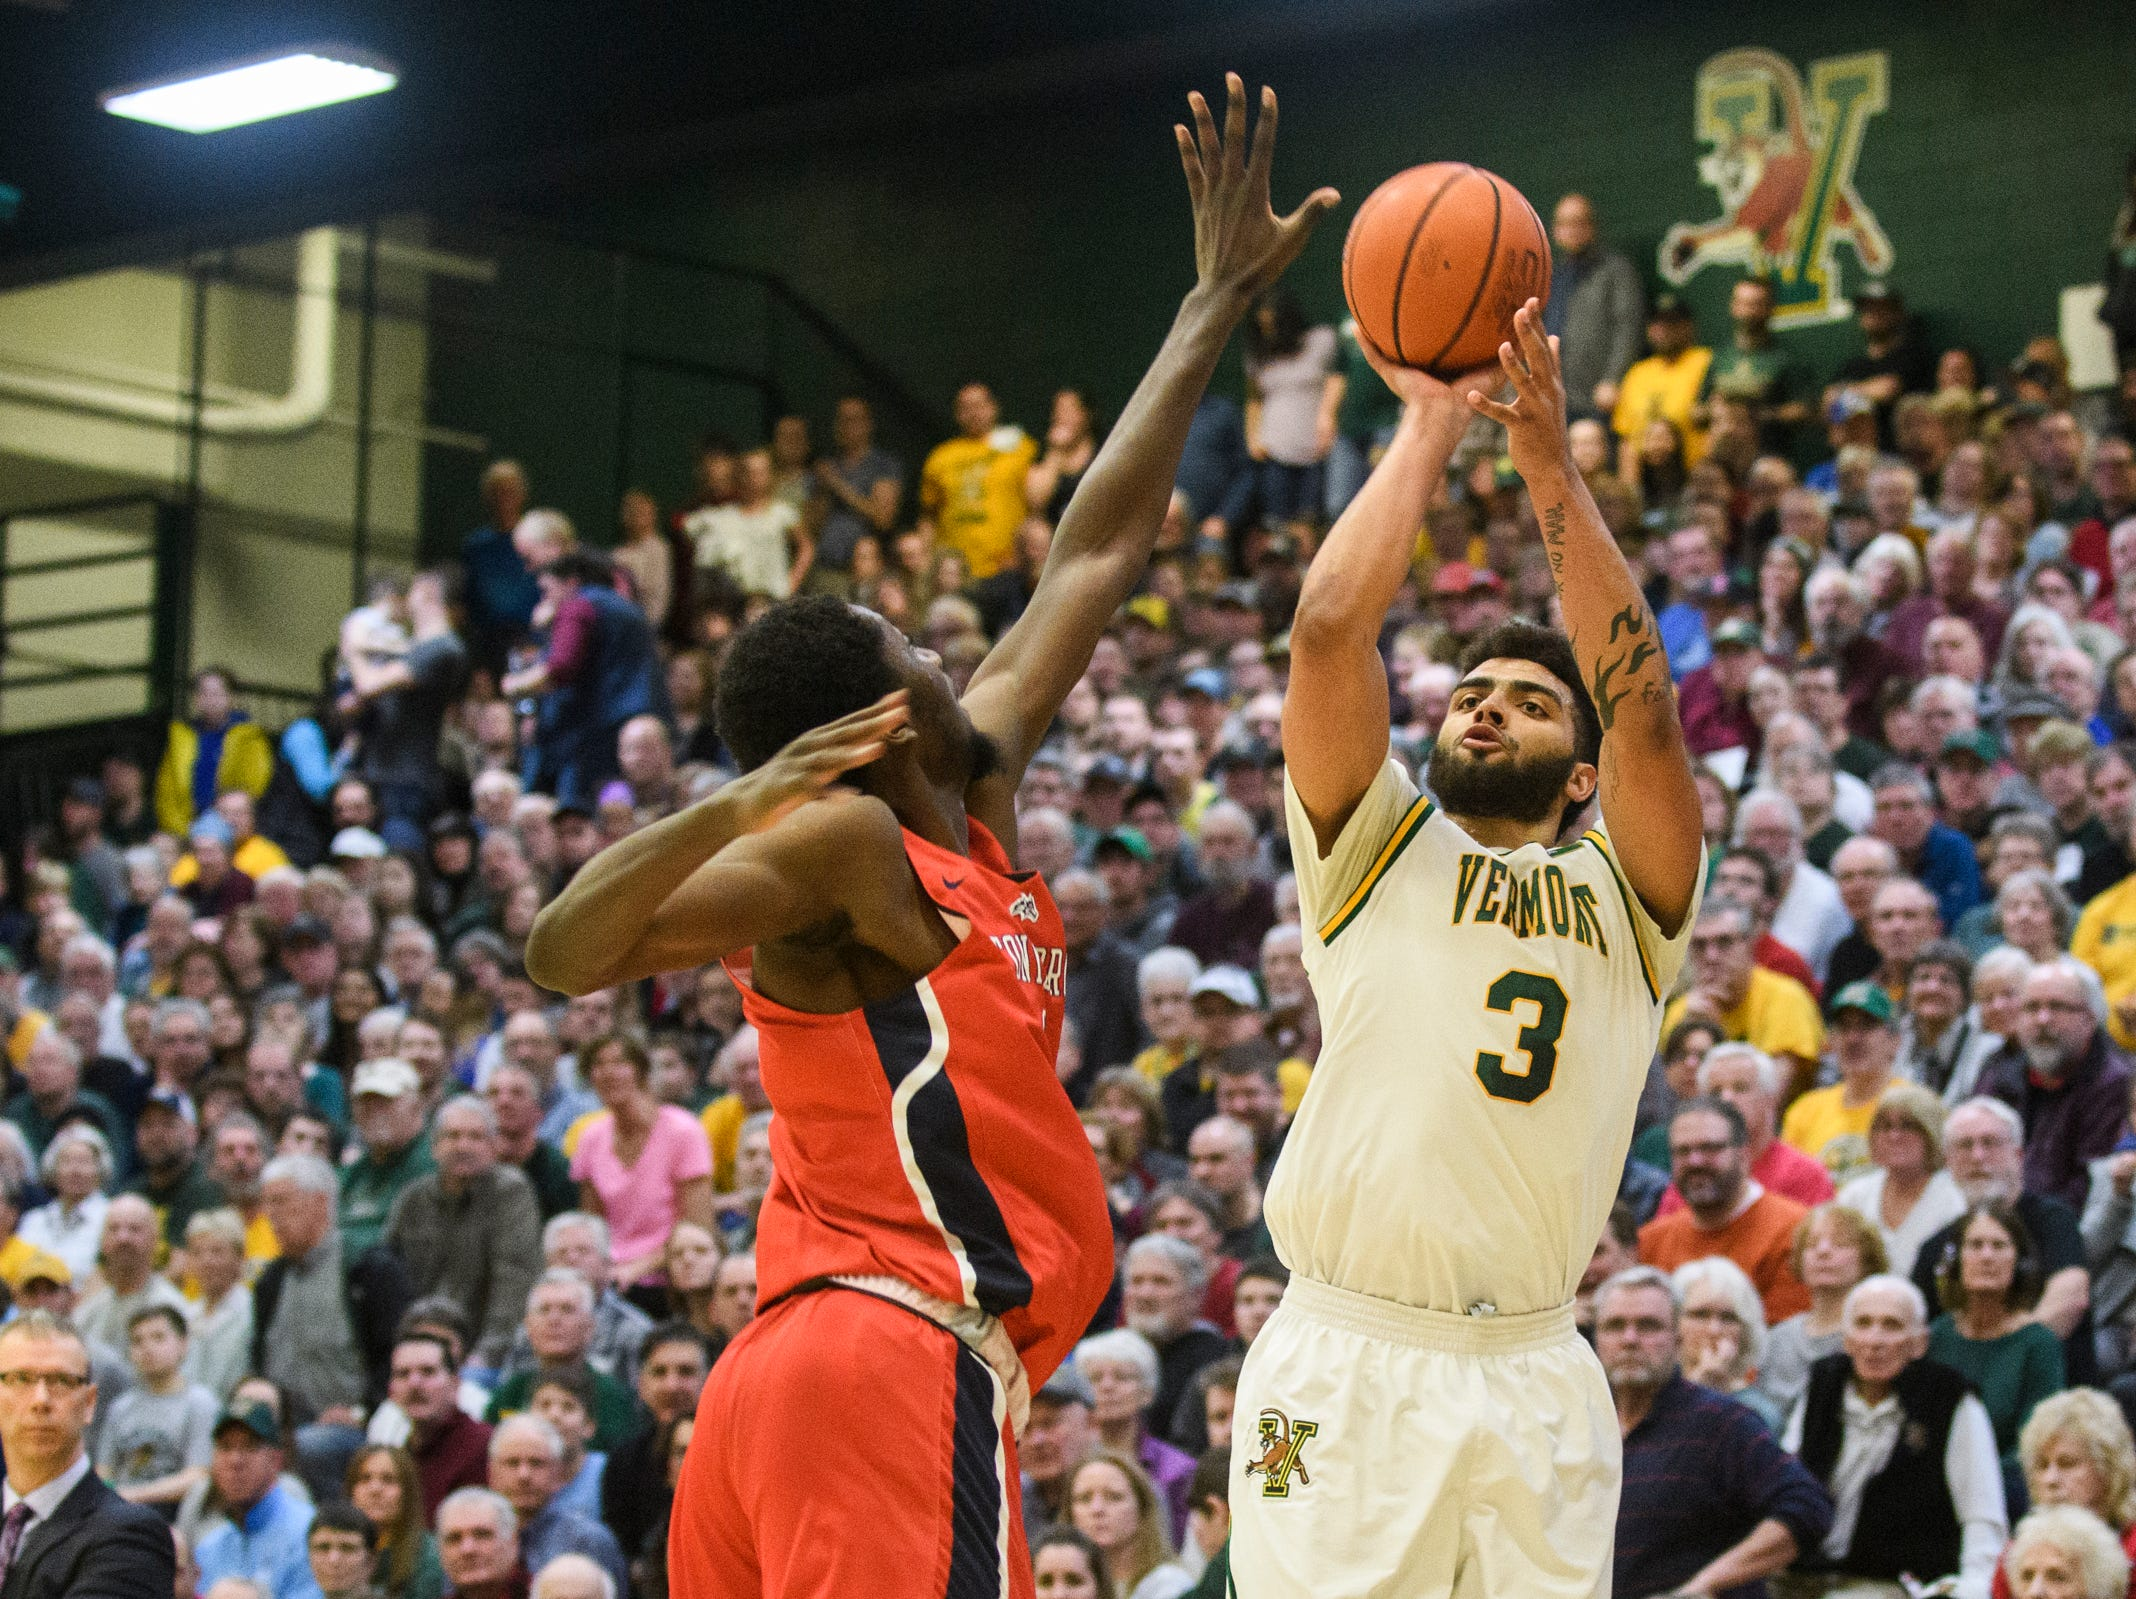 Vermont forward Anthony Lamb (3) shoots a three pointer during the men's basketball game between the Stony Brook Seawolves and the Vermont Catamounts at Patrick Gym on Saturday night March 2, 2019 in Burlington, Vermont.